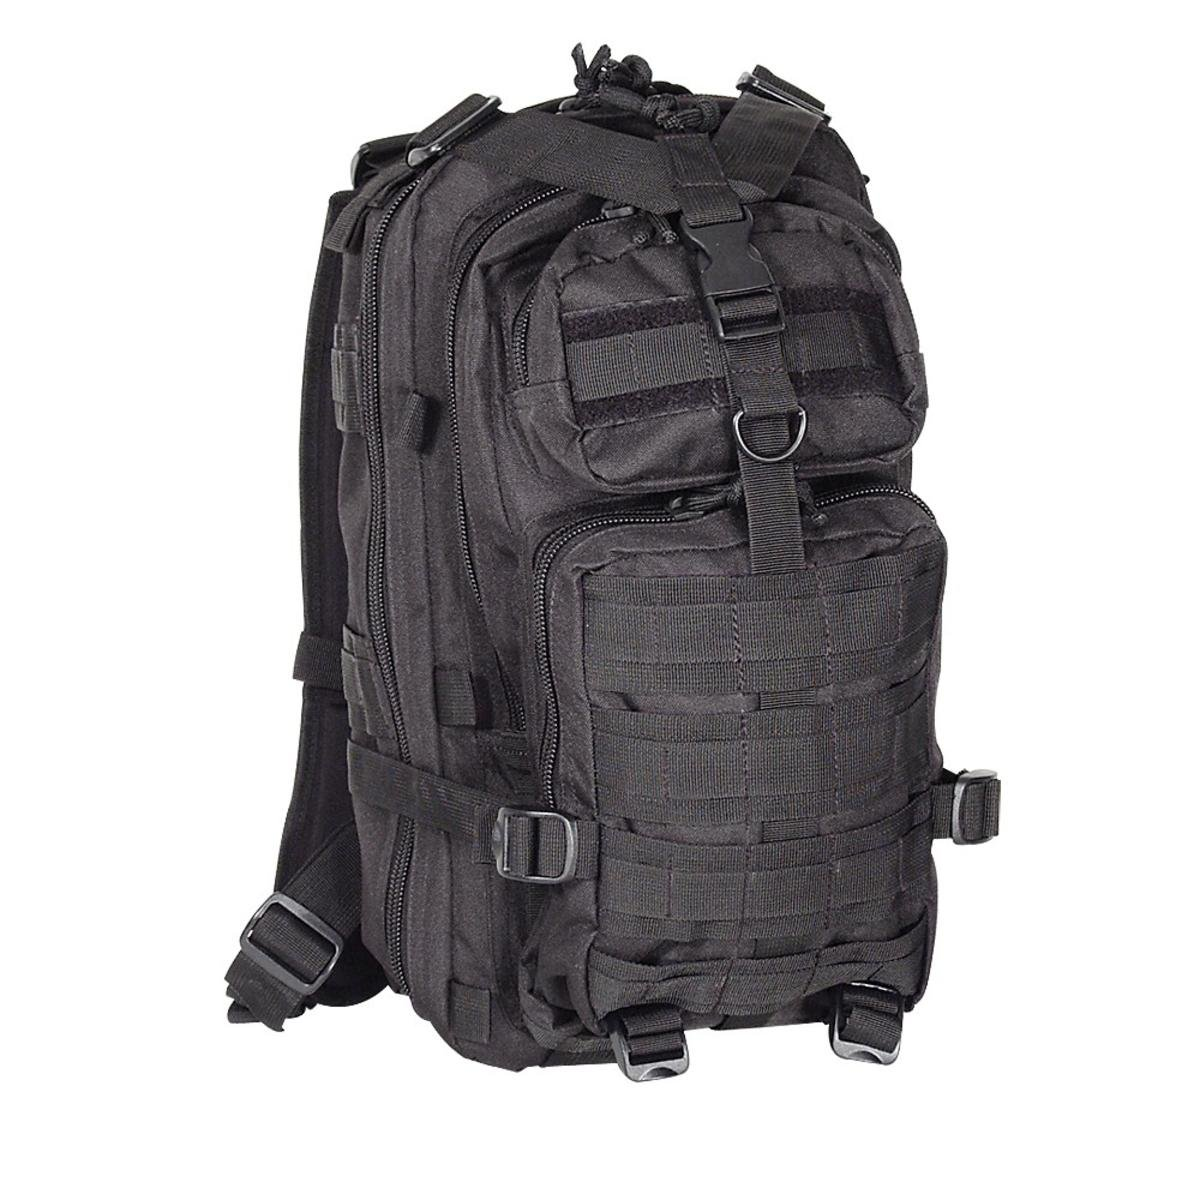 1d1a78cb1c71 VooDoo Tactical Level III MOLLE Compatible Assault Pack